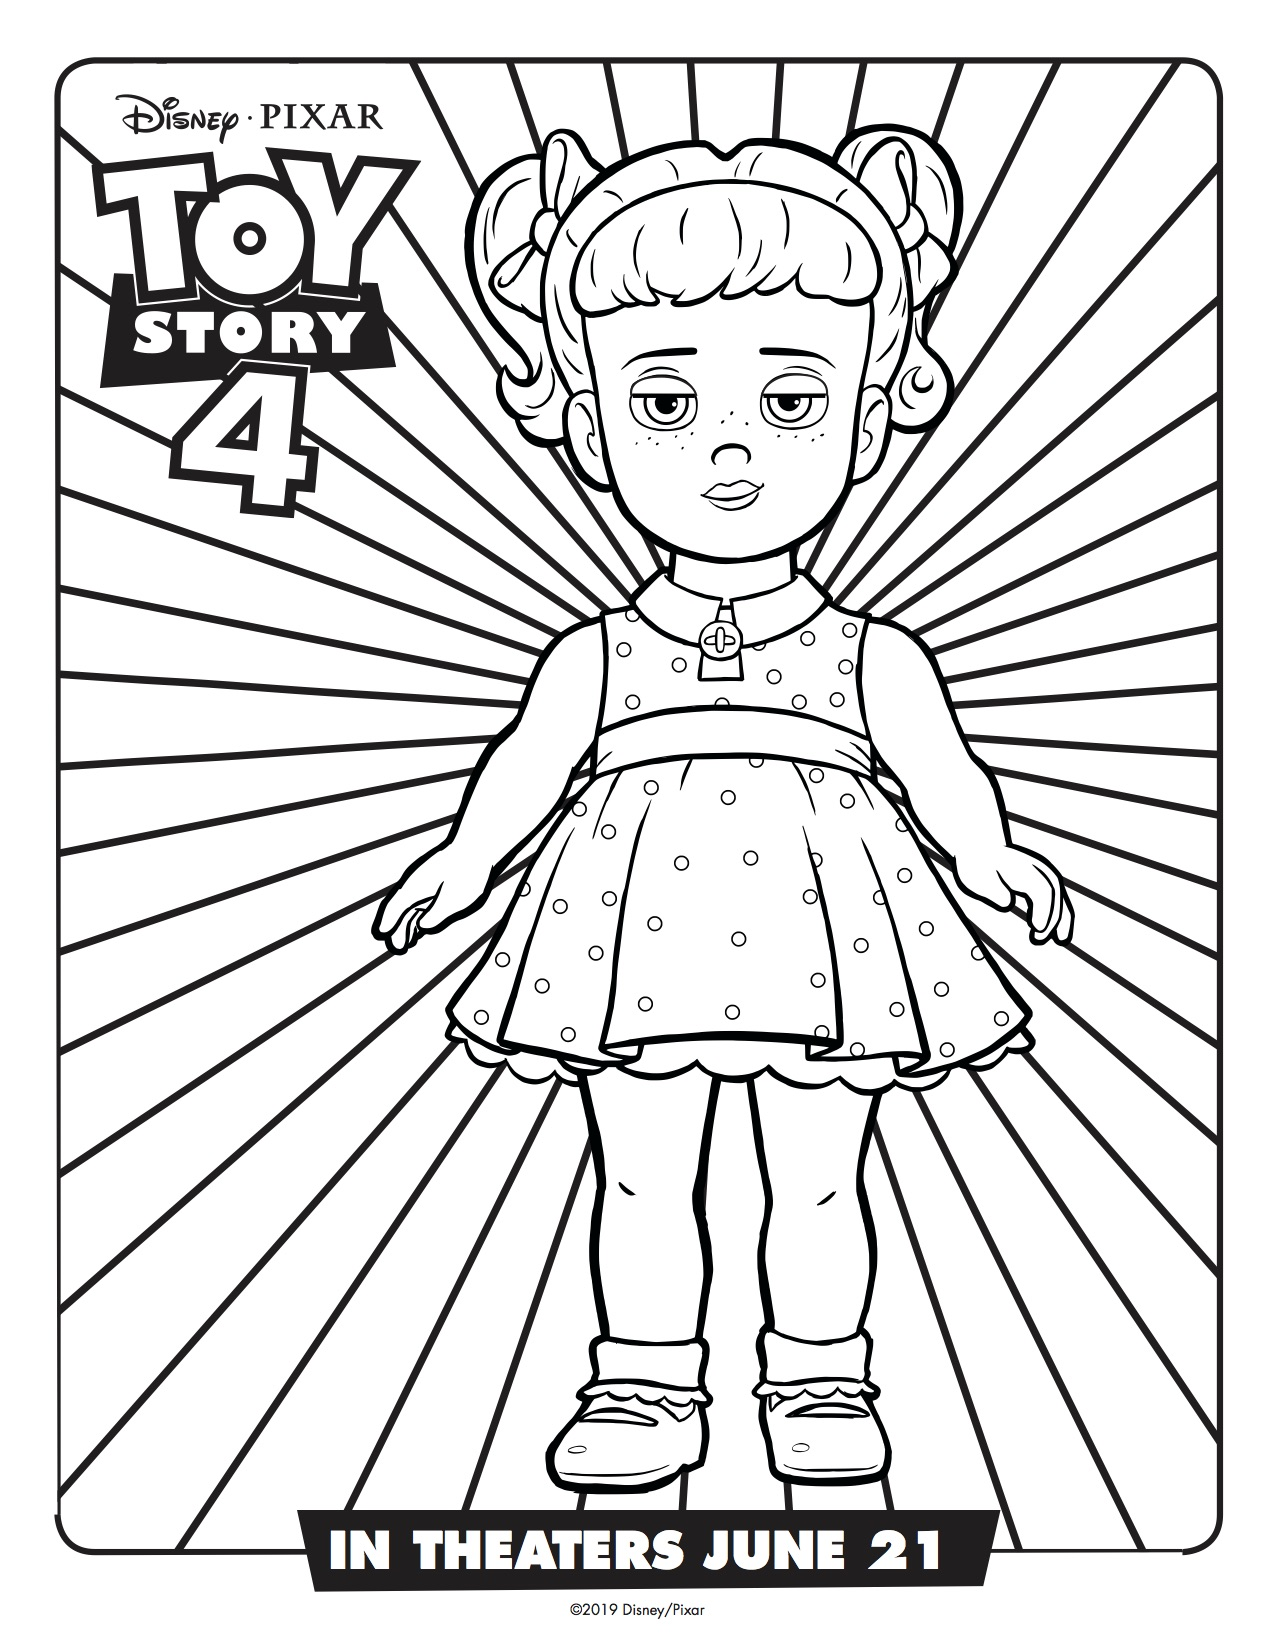 Toy Story 4 Gabby Gabby Printable Coloring Page Simply